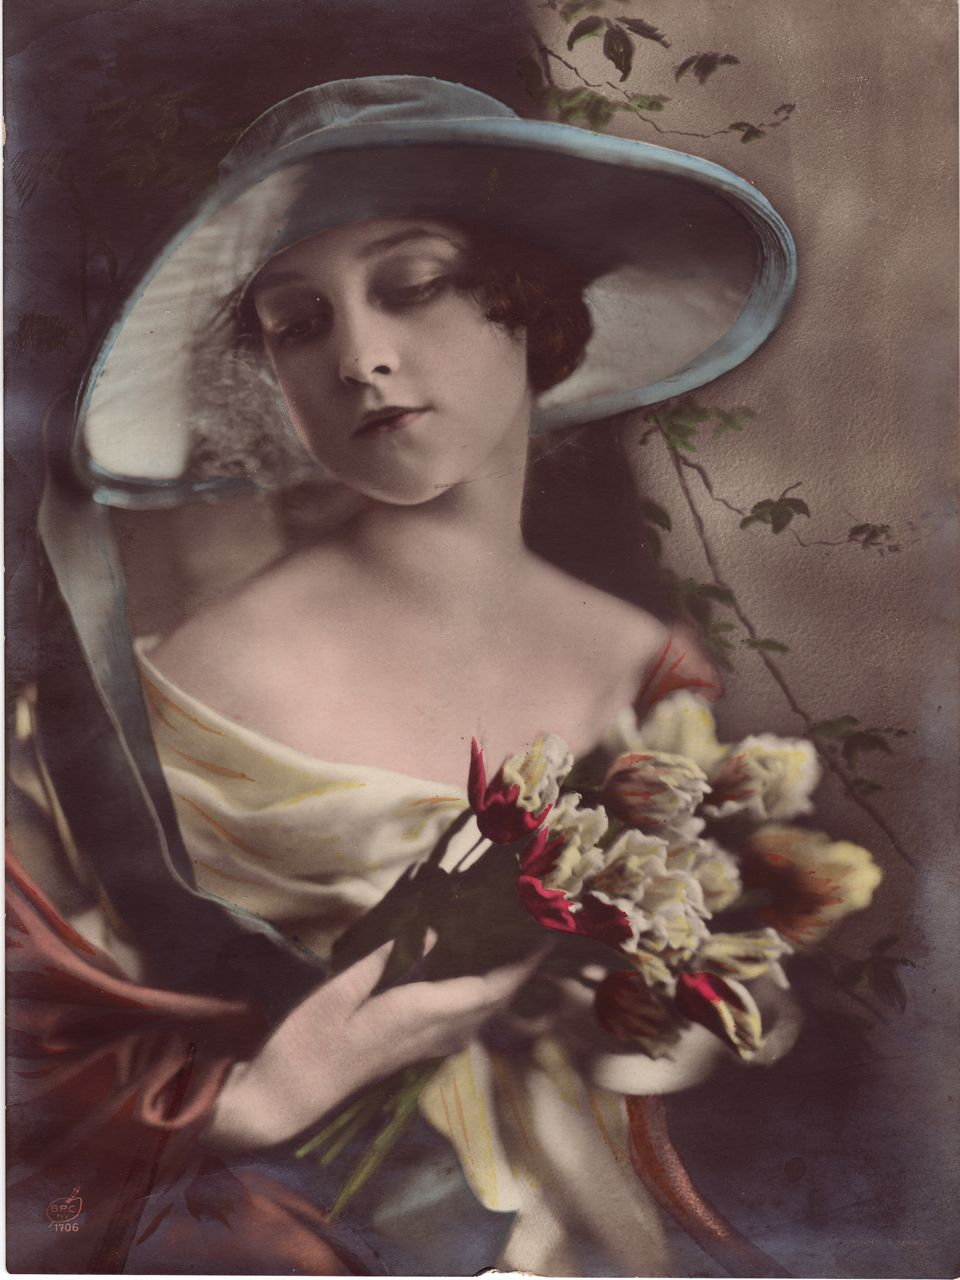 Hand-Tinted Silver Gelatin Photograph of a Young Woman C. 1918-1920